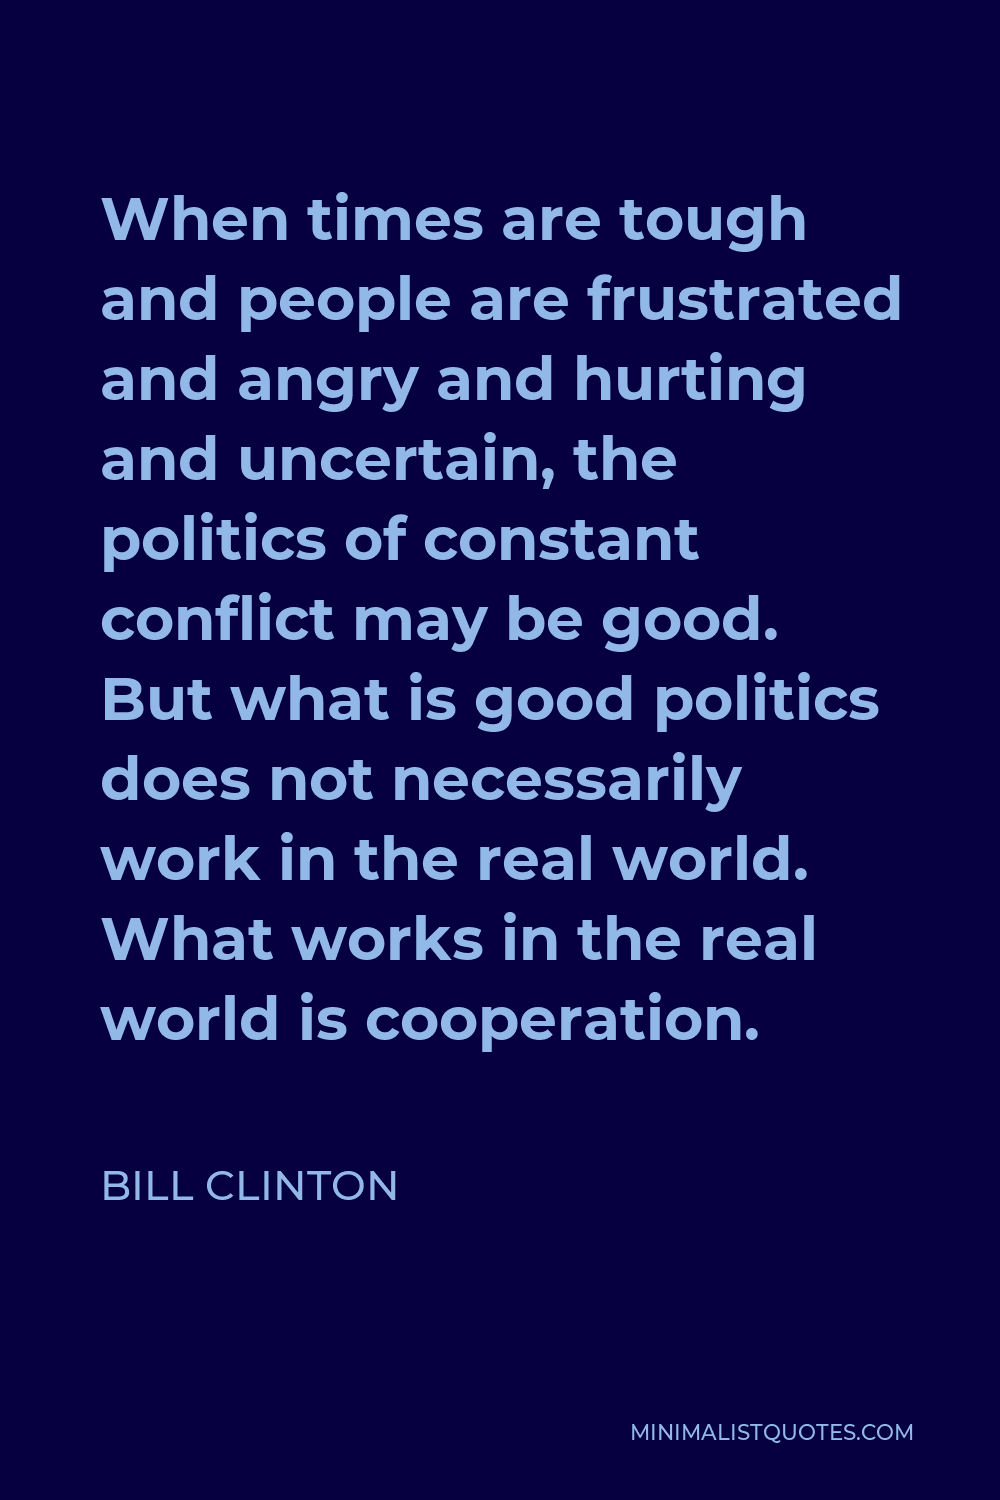 Bill Clinton Quote - When times are tough and people are frustrated and angry and hurting and uncertain, the politics of constant conflict may be good. But what is good politics does not necessarily work in the real world. What works in the real world is cooperation.